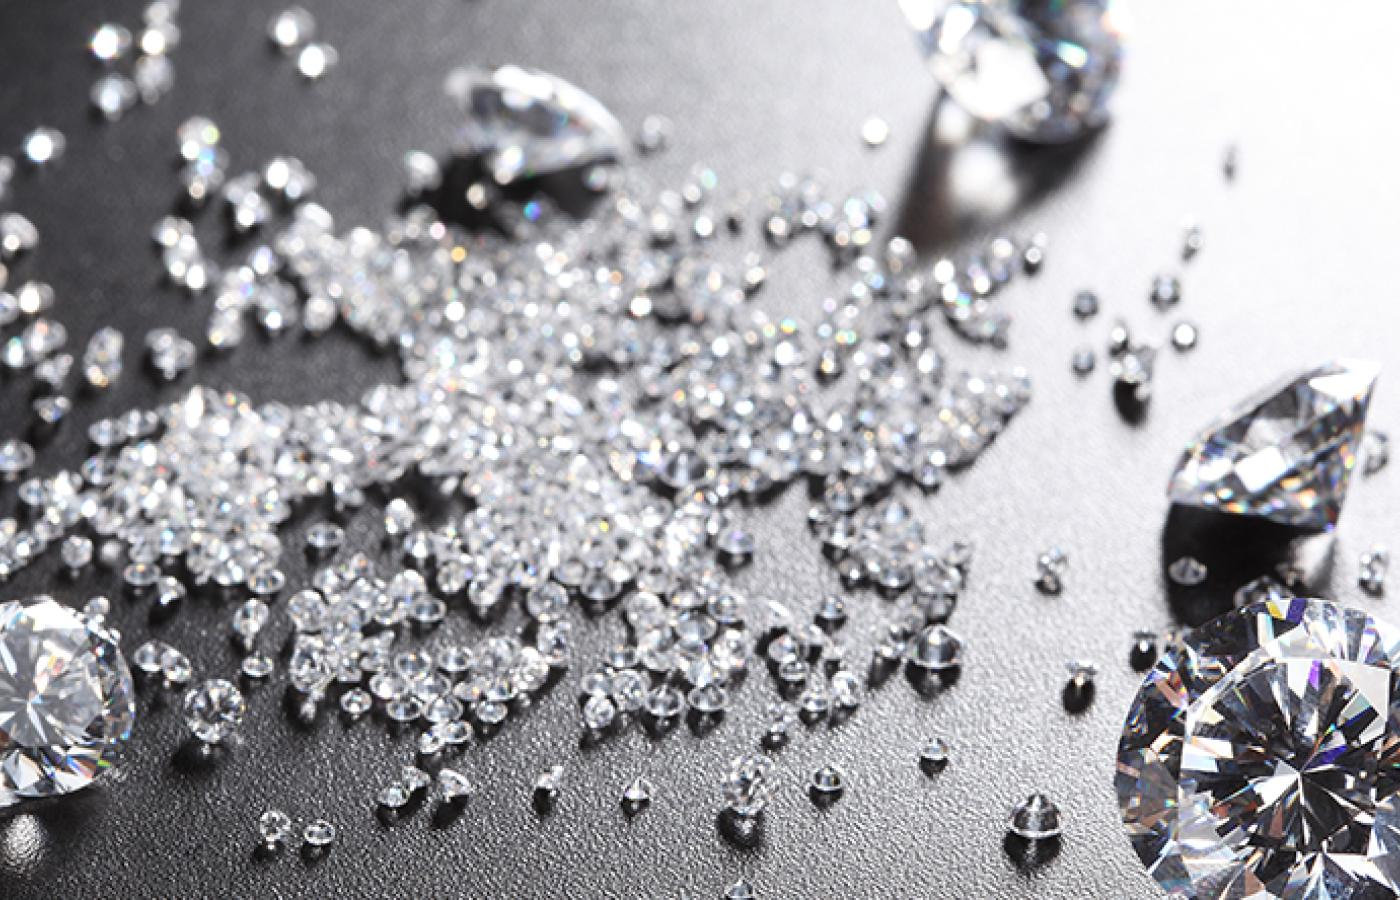 Diamonds were discovered in the NWT in the 1990s.